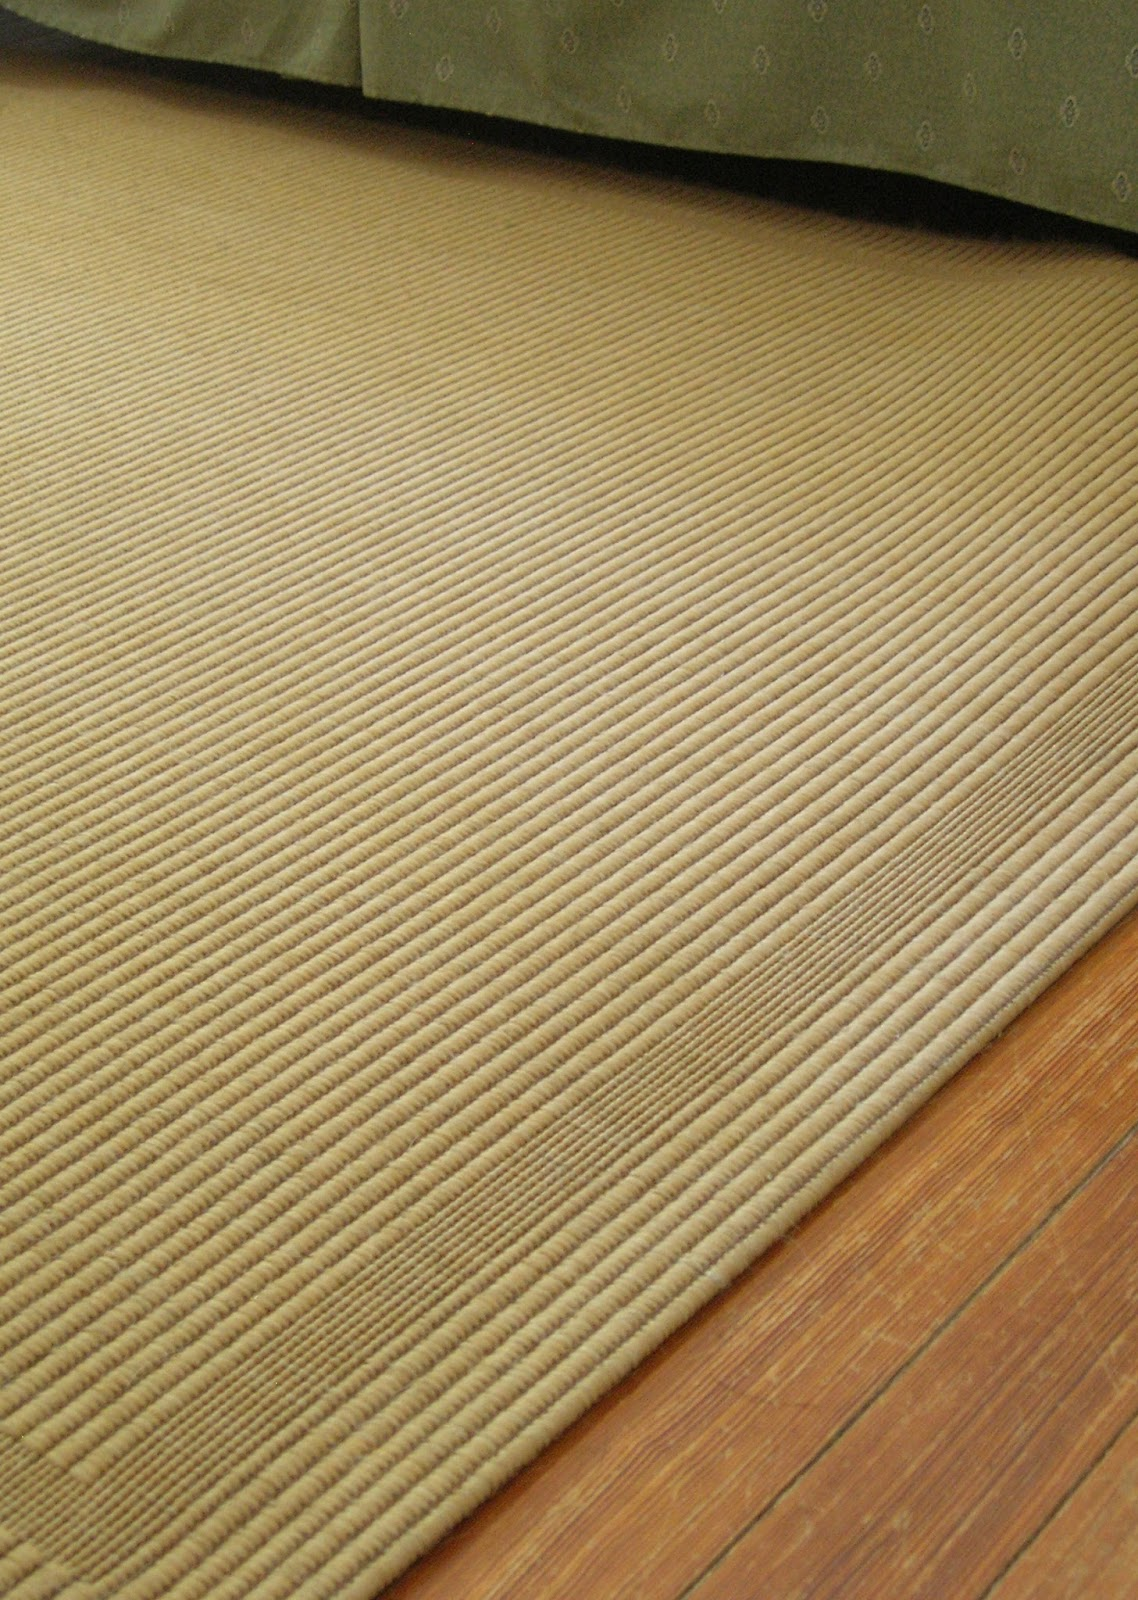 They Are Inexpensive And Easy To Replace If Needed. Do You Use Indoor/outdoor  Rugs In Your Home Decorating?